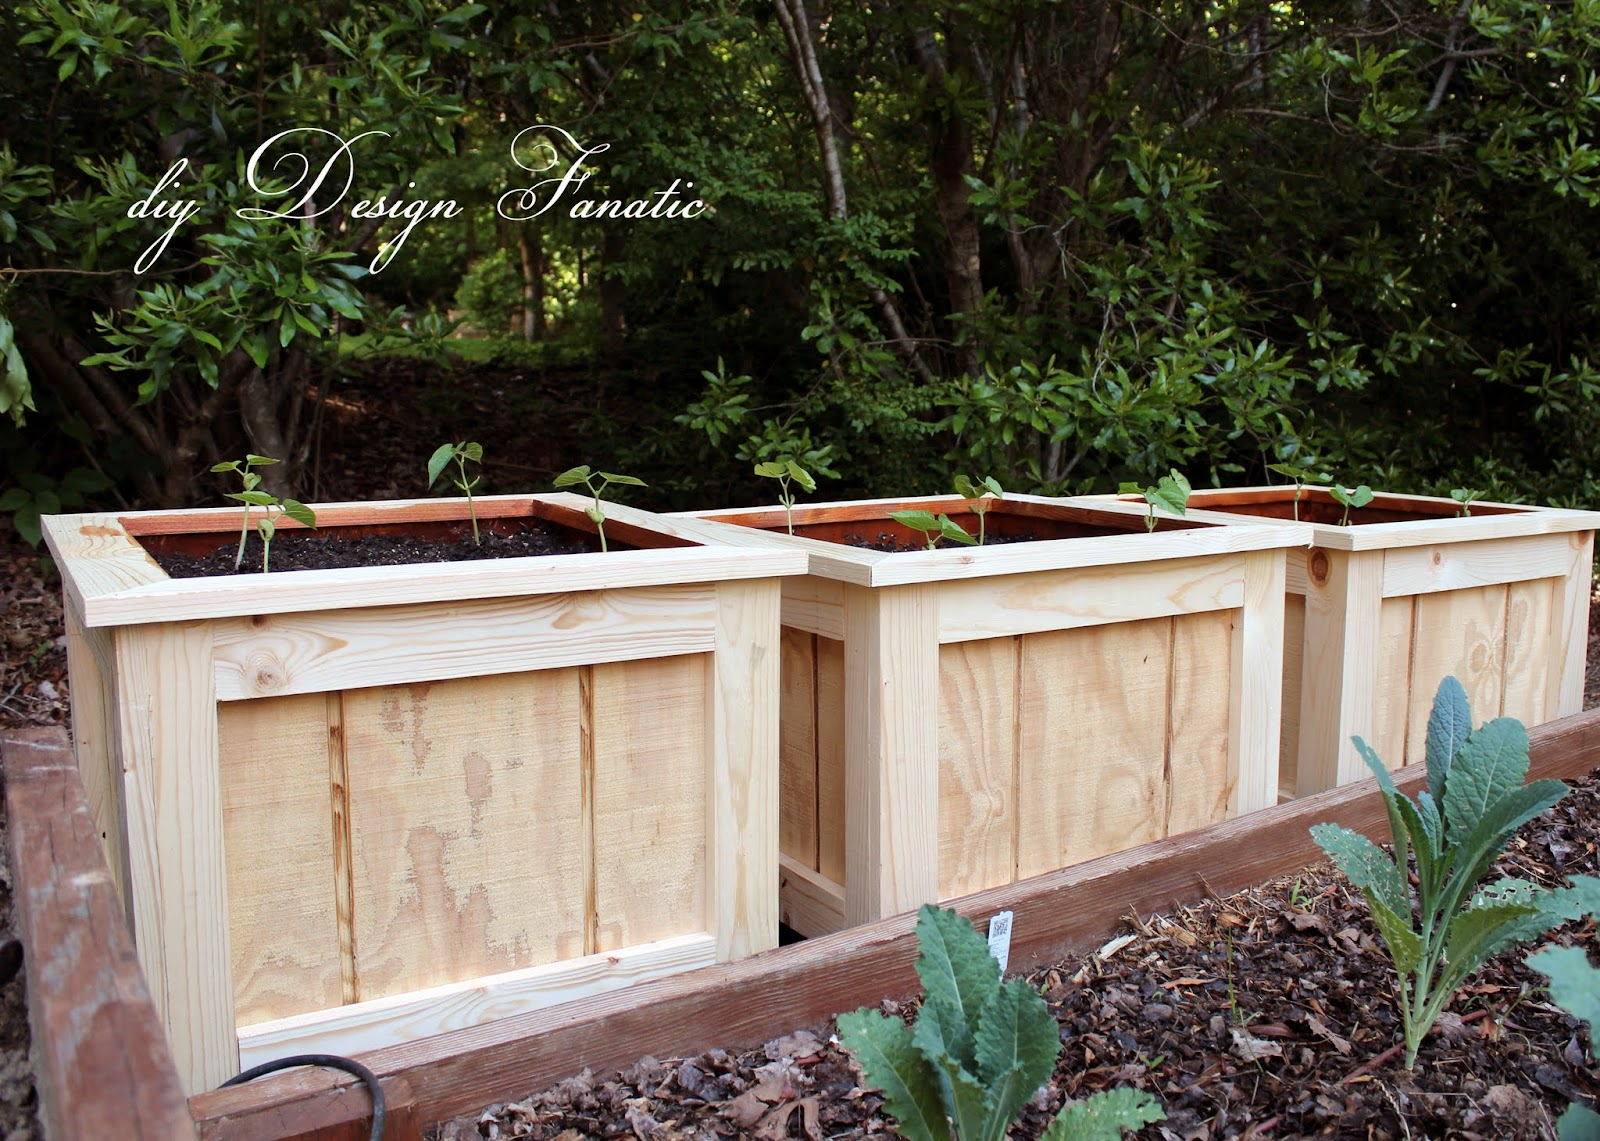 diy design fanatic finished planter boxes and garden update